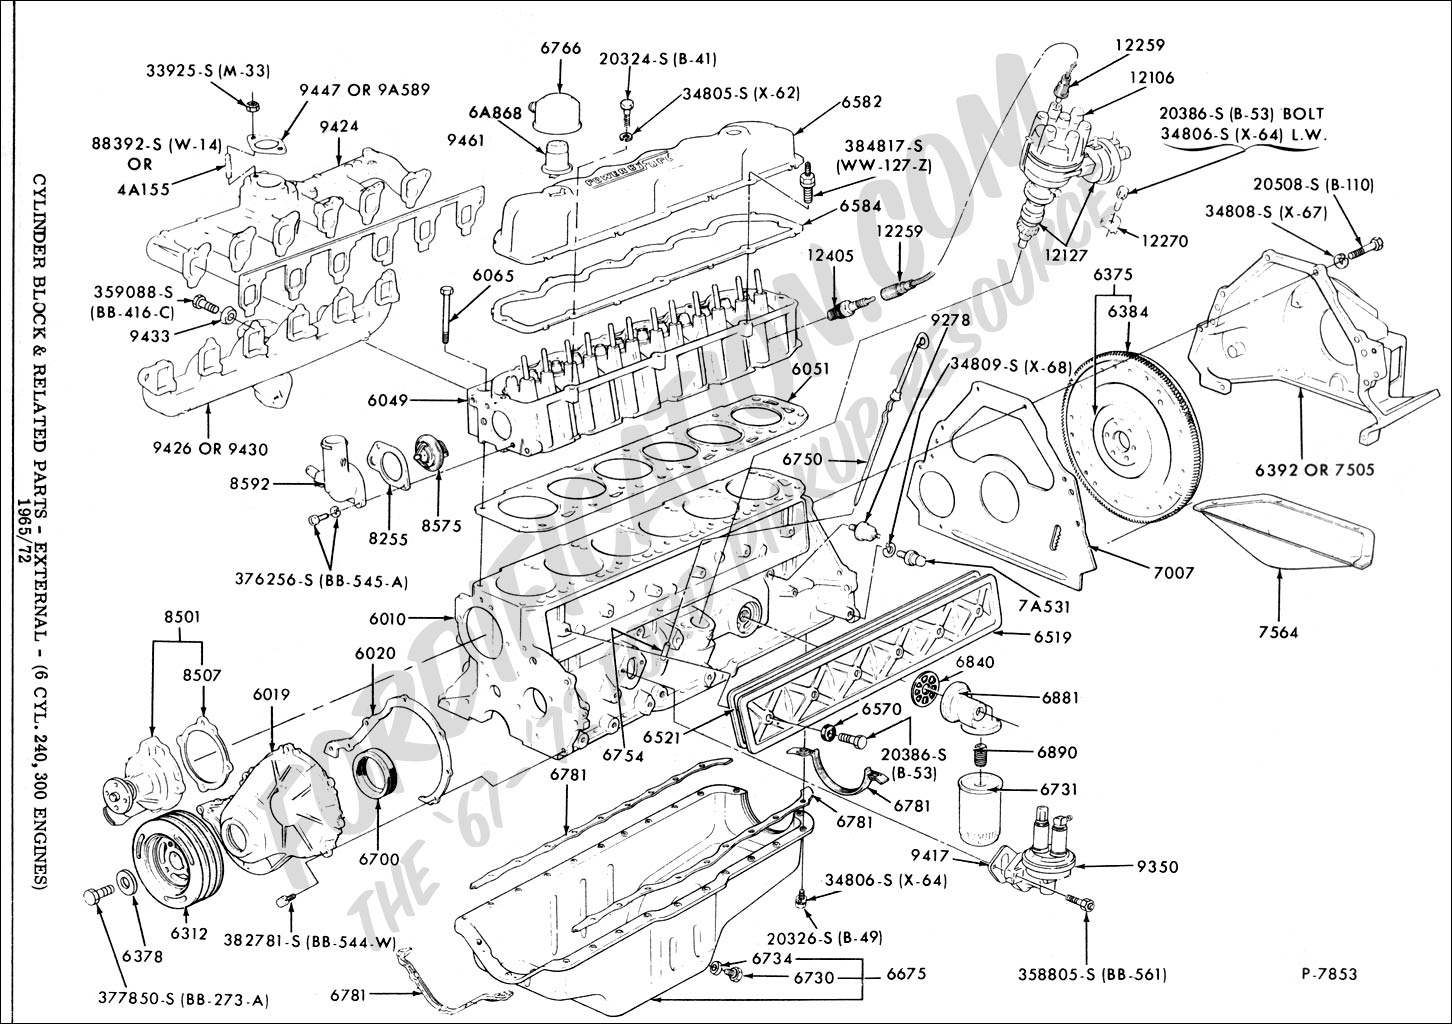 6 Cylinder Engine Diagram on volvo wiring diagram